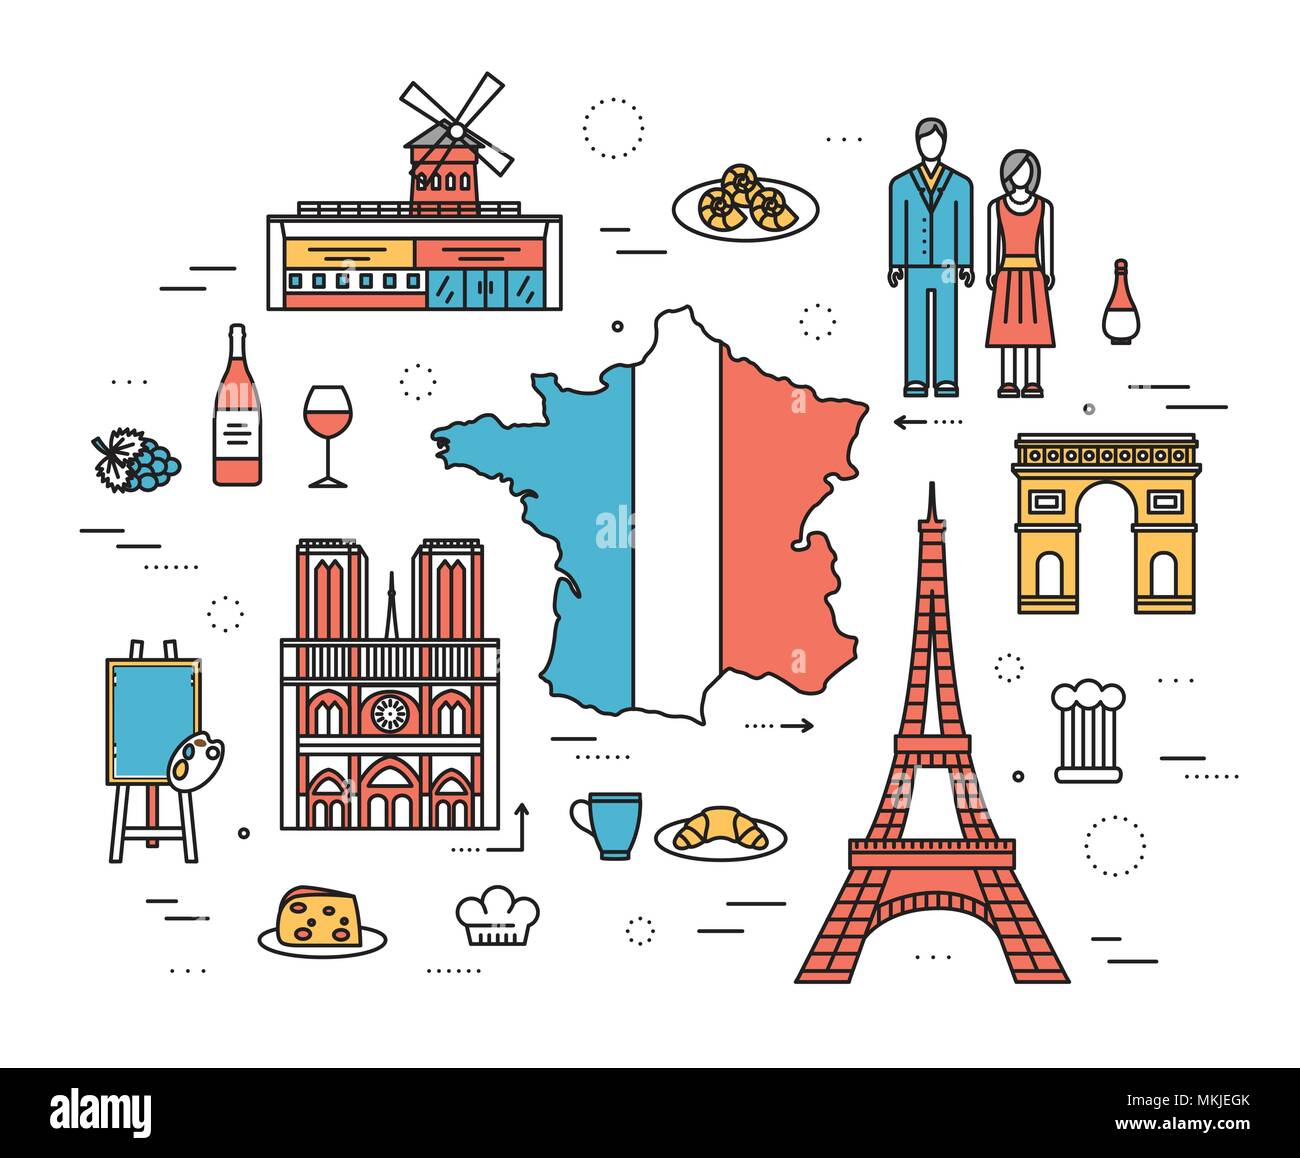 Country France trip guide of goods, places in thin lines